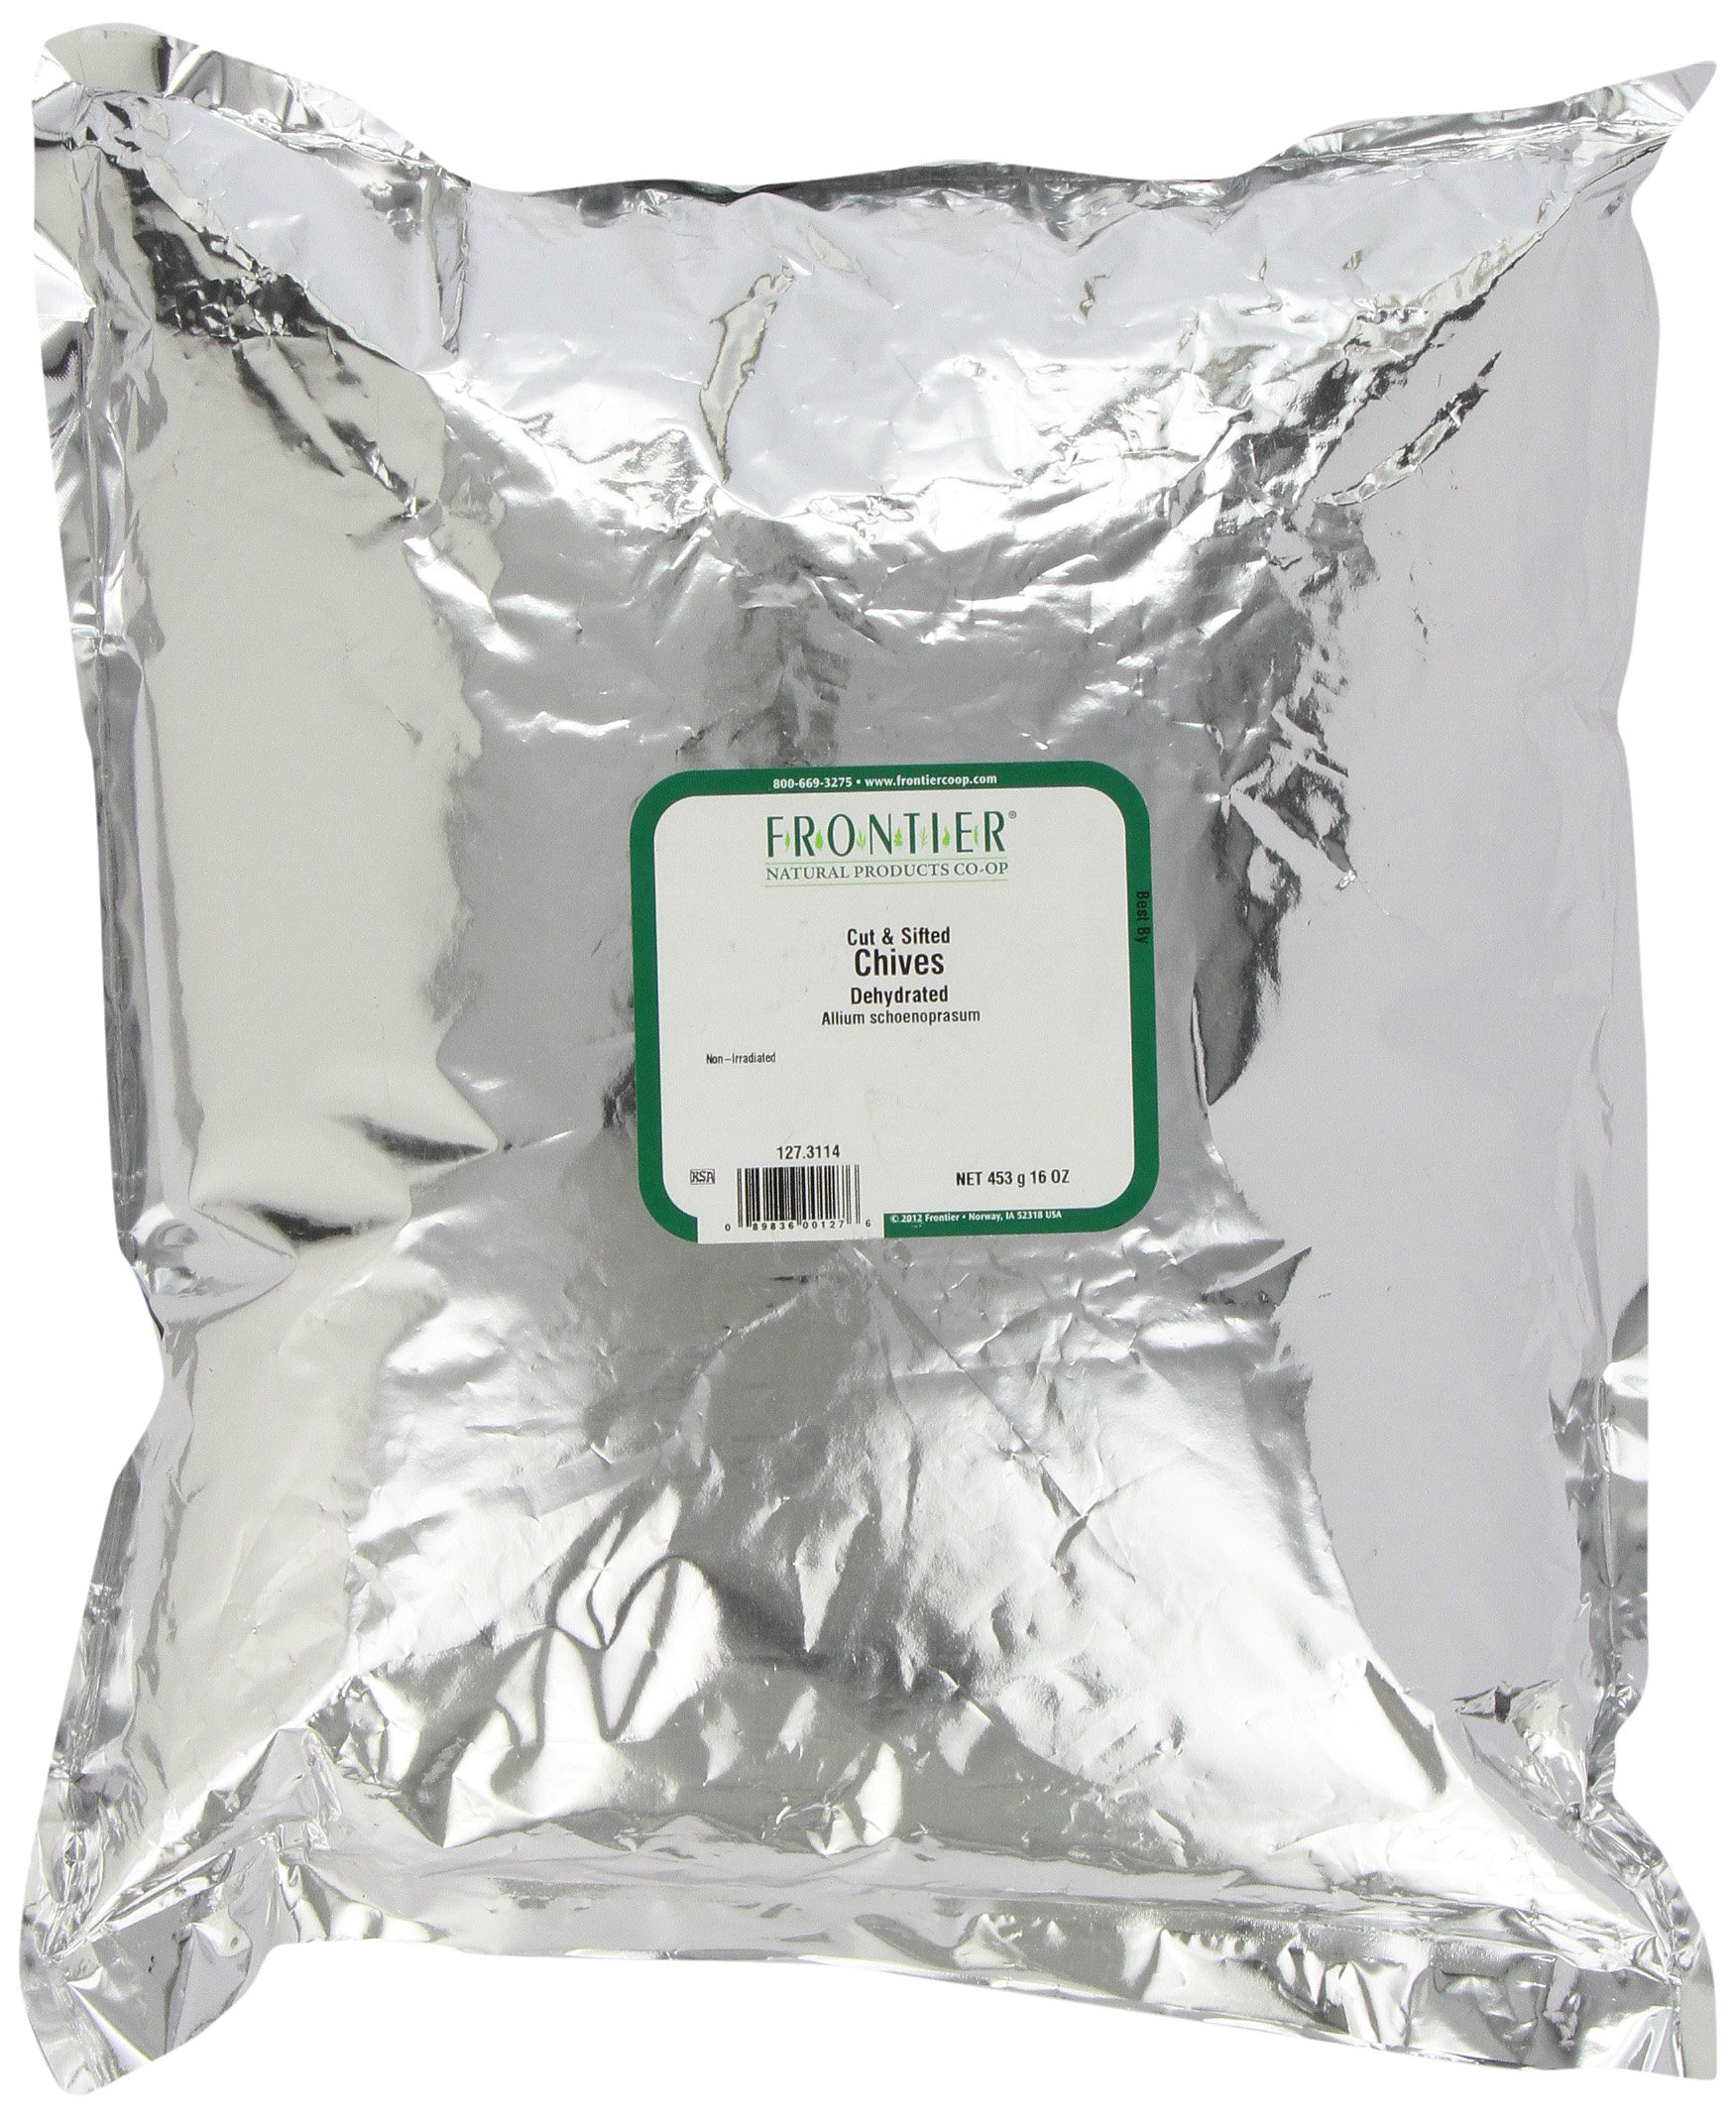 Frontier Chives, Dehydrated, C/s, 16 Ounce Bag